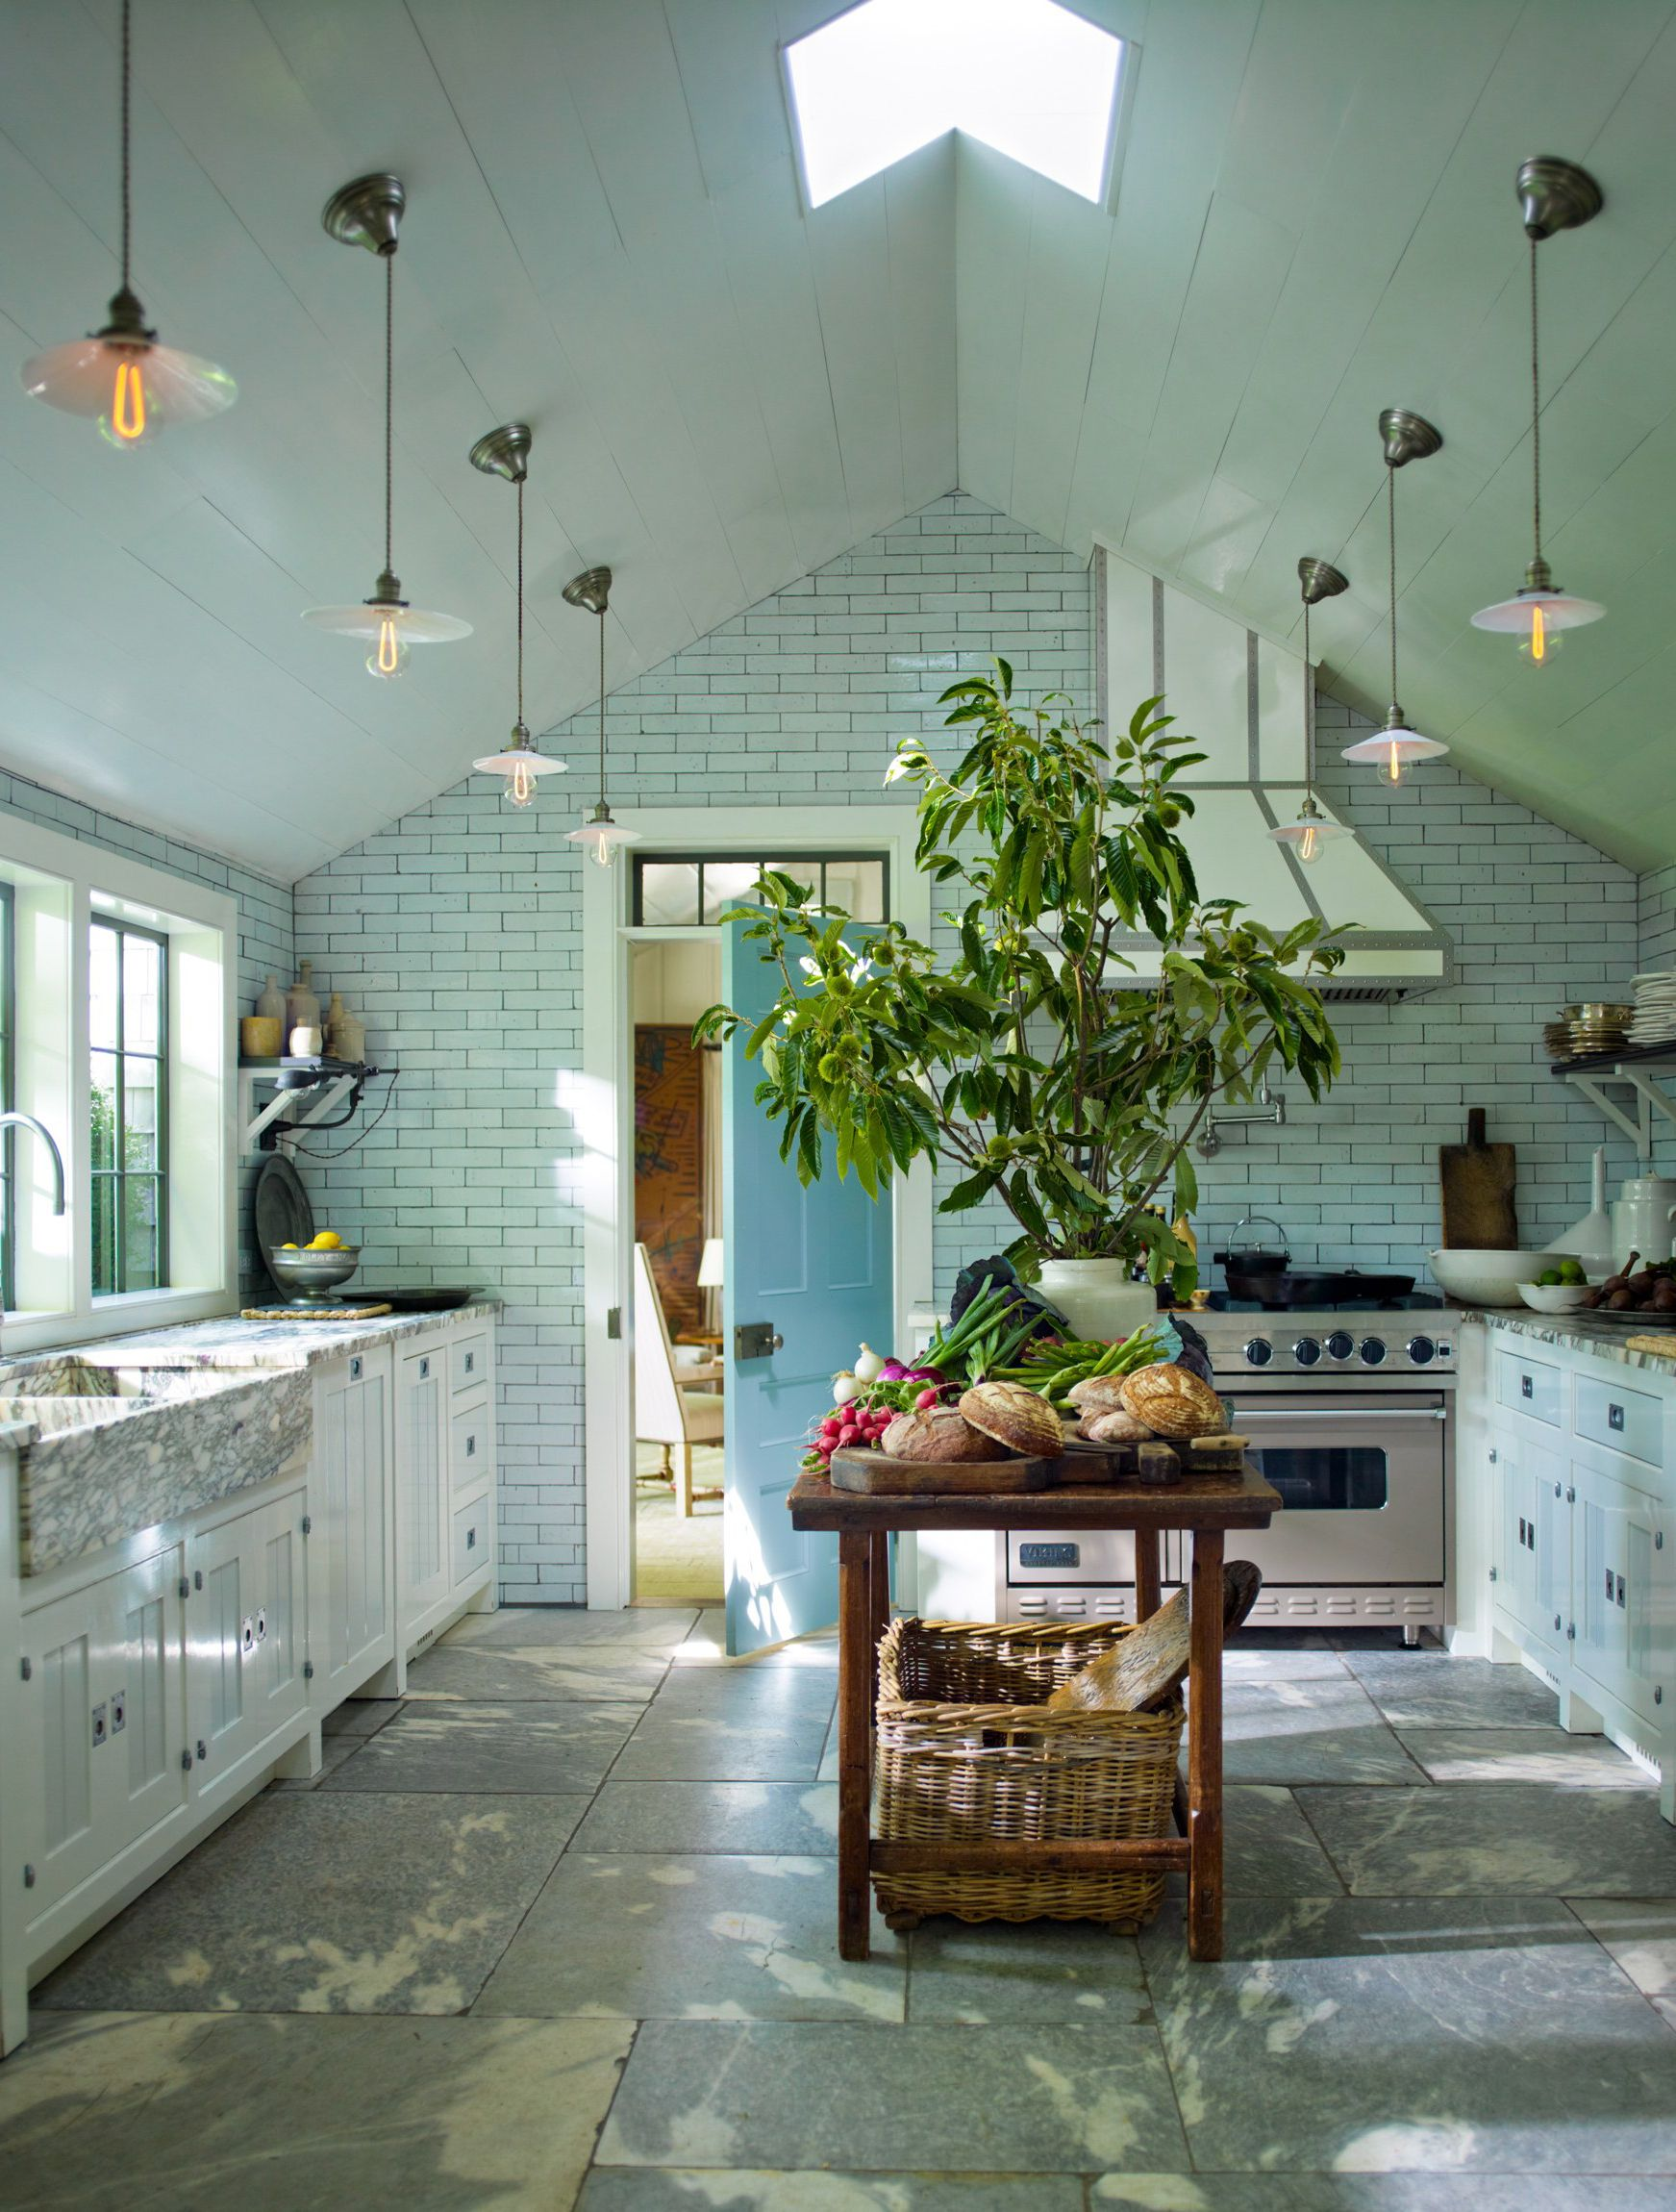 9 of the Most Gorgeous Kitchen Floors in the World | Pinterest ...